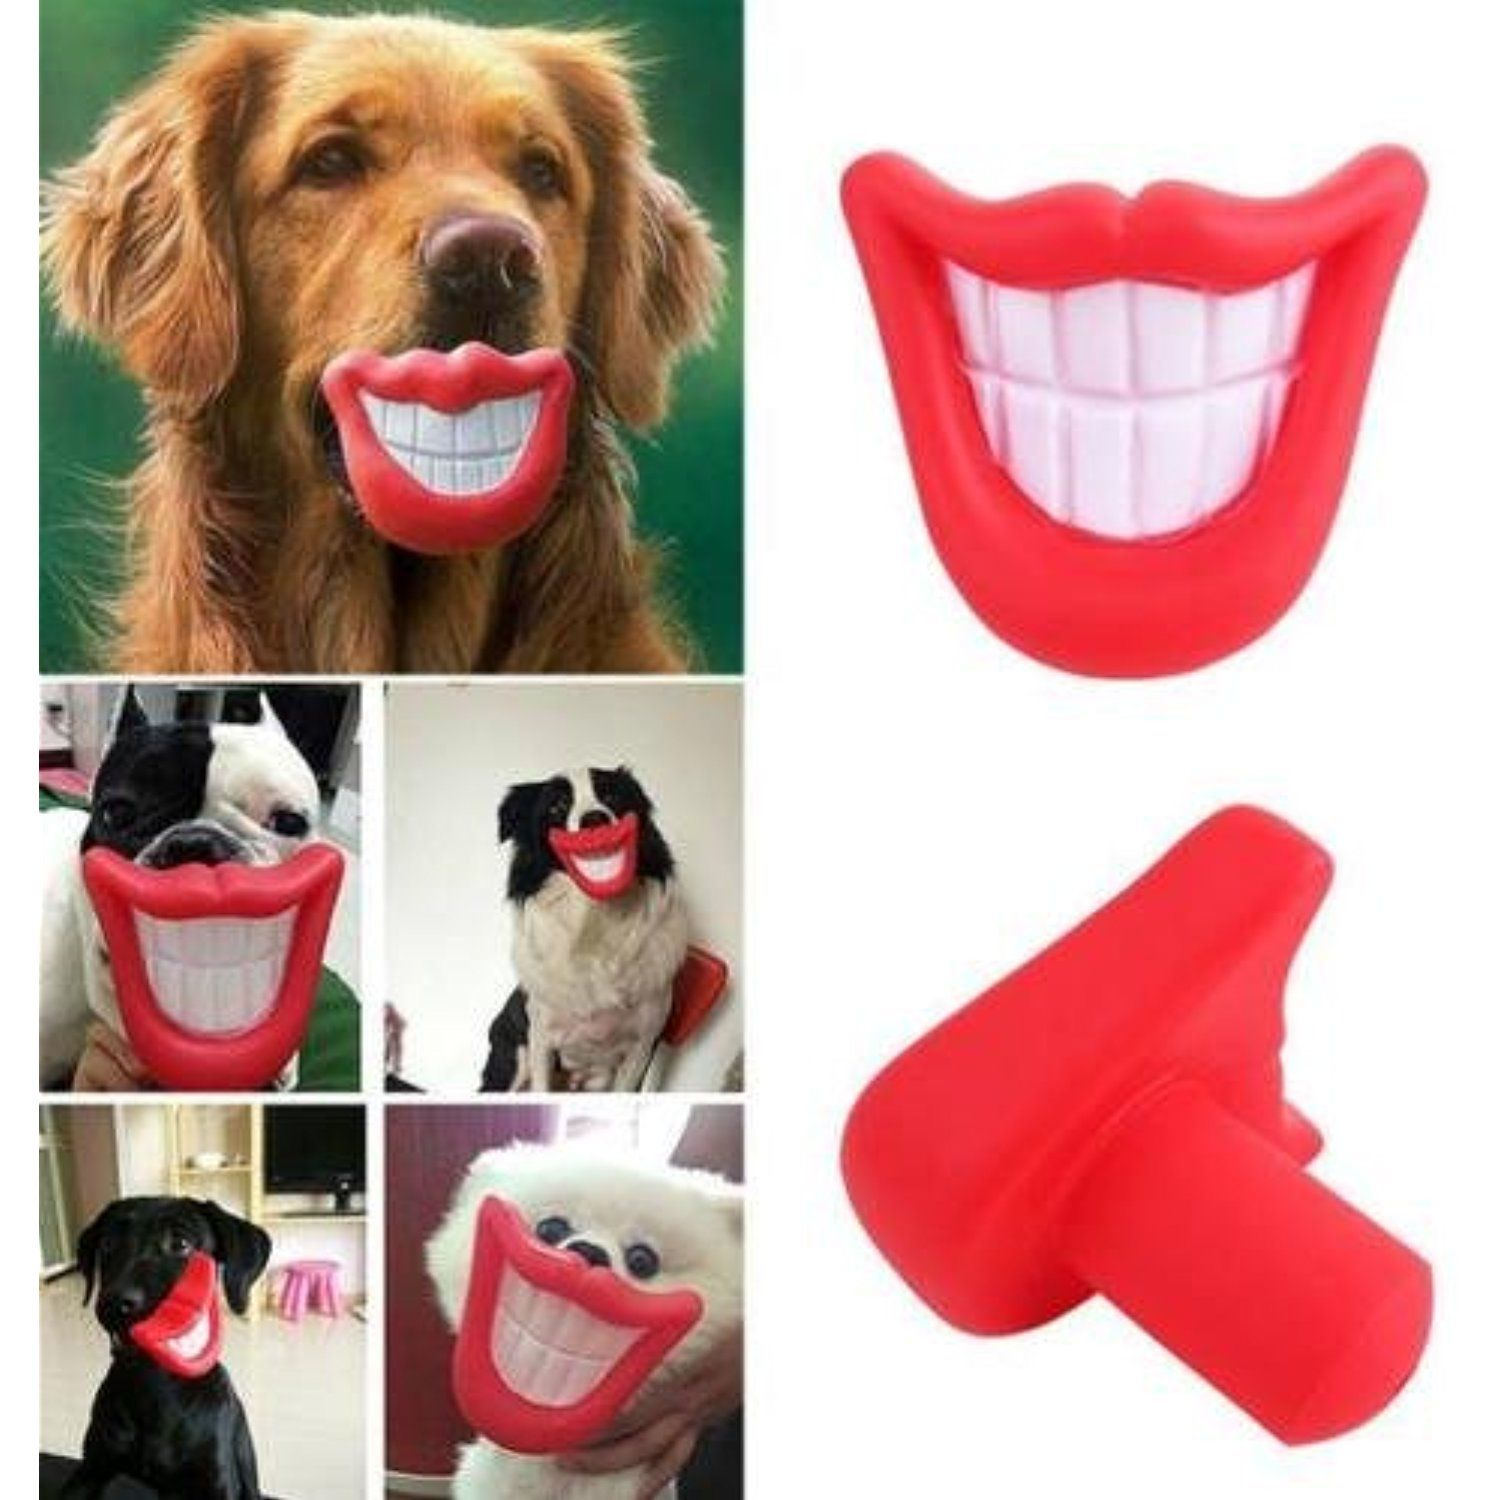 Unakim Puppy Dog Toys Big Red Rubber Lips For Pet Dog With Sound